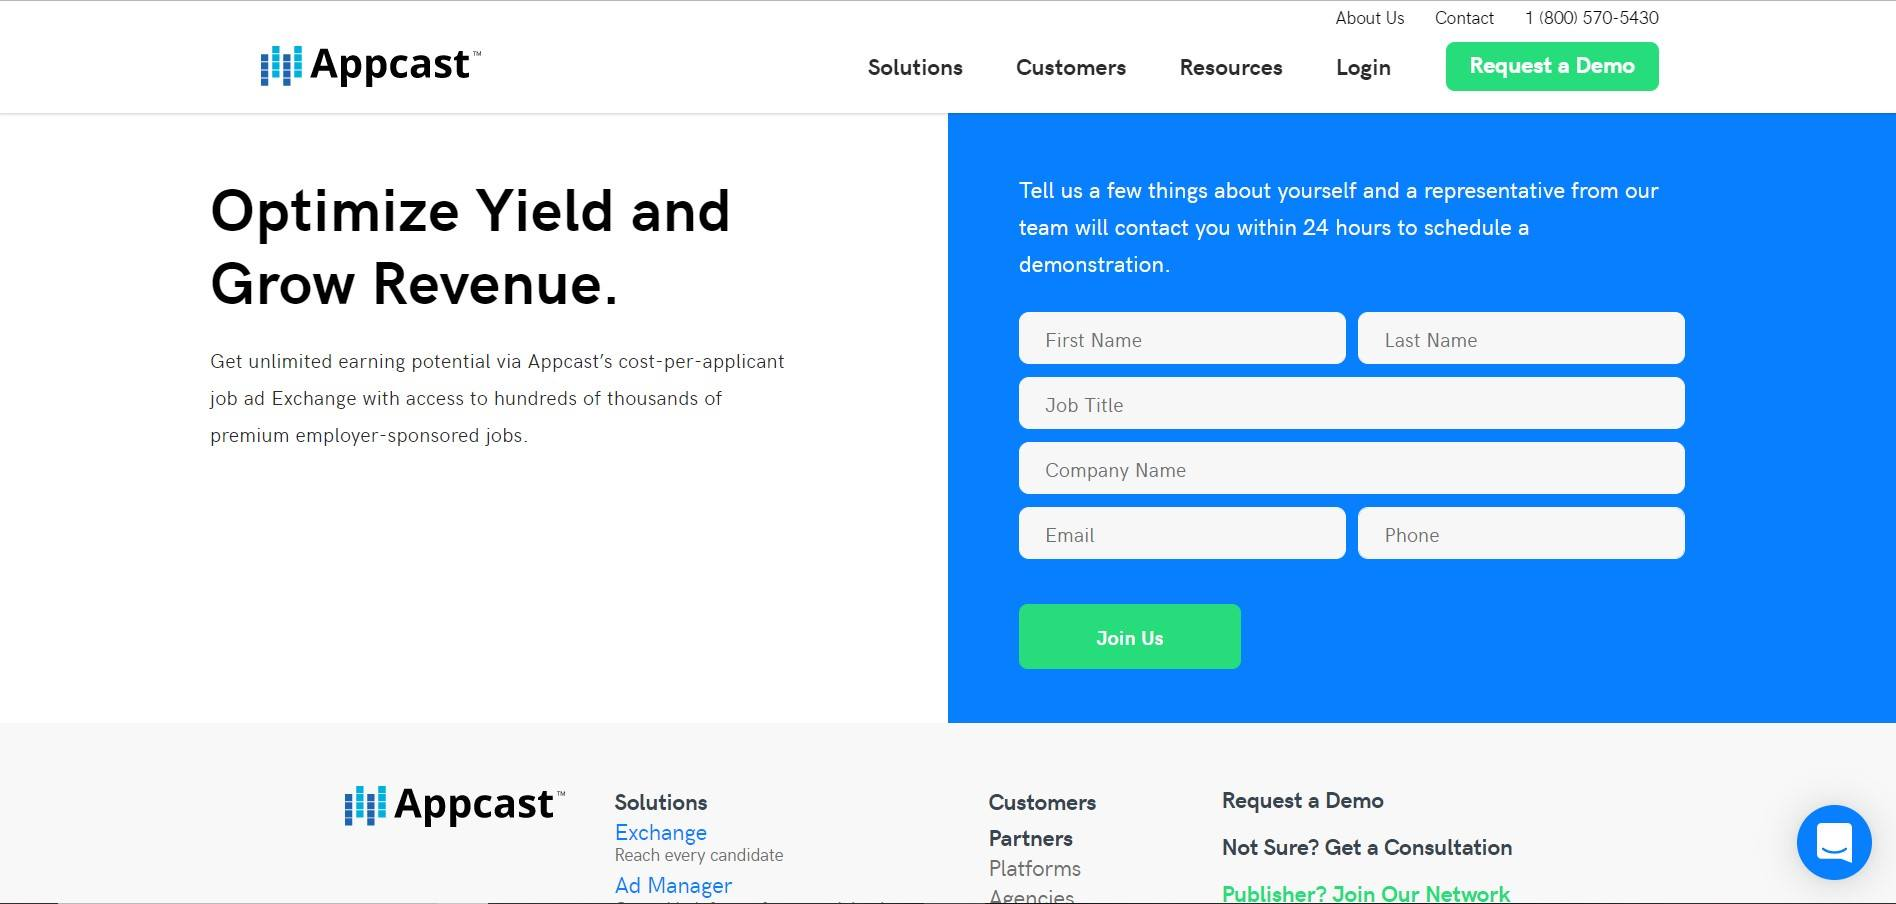 This screenshot shows a landing page with a white background, black text and a blue call-to-action box with green buttons.